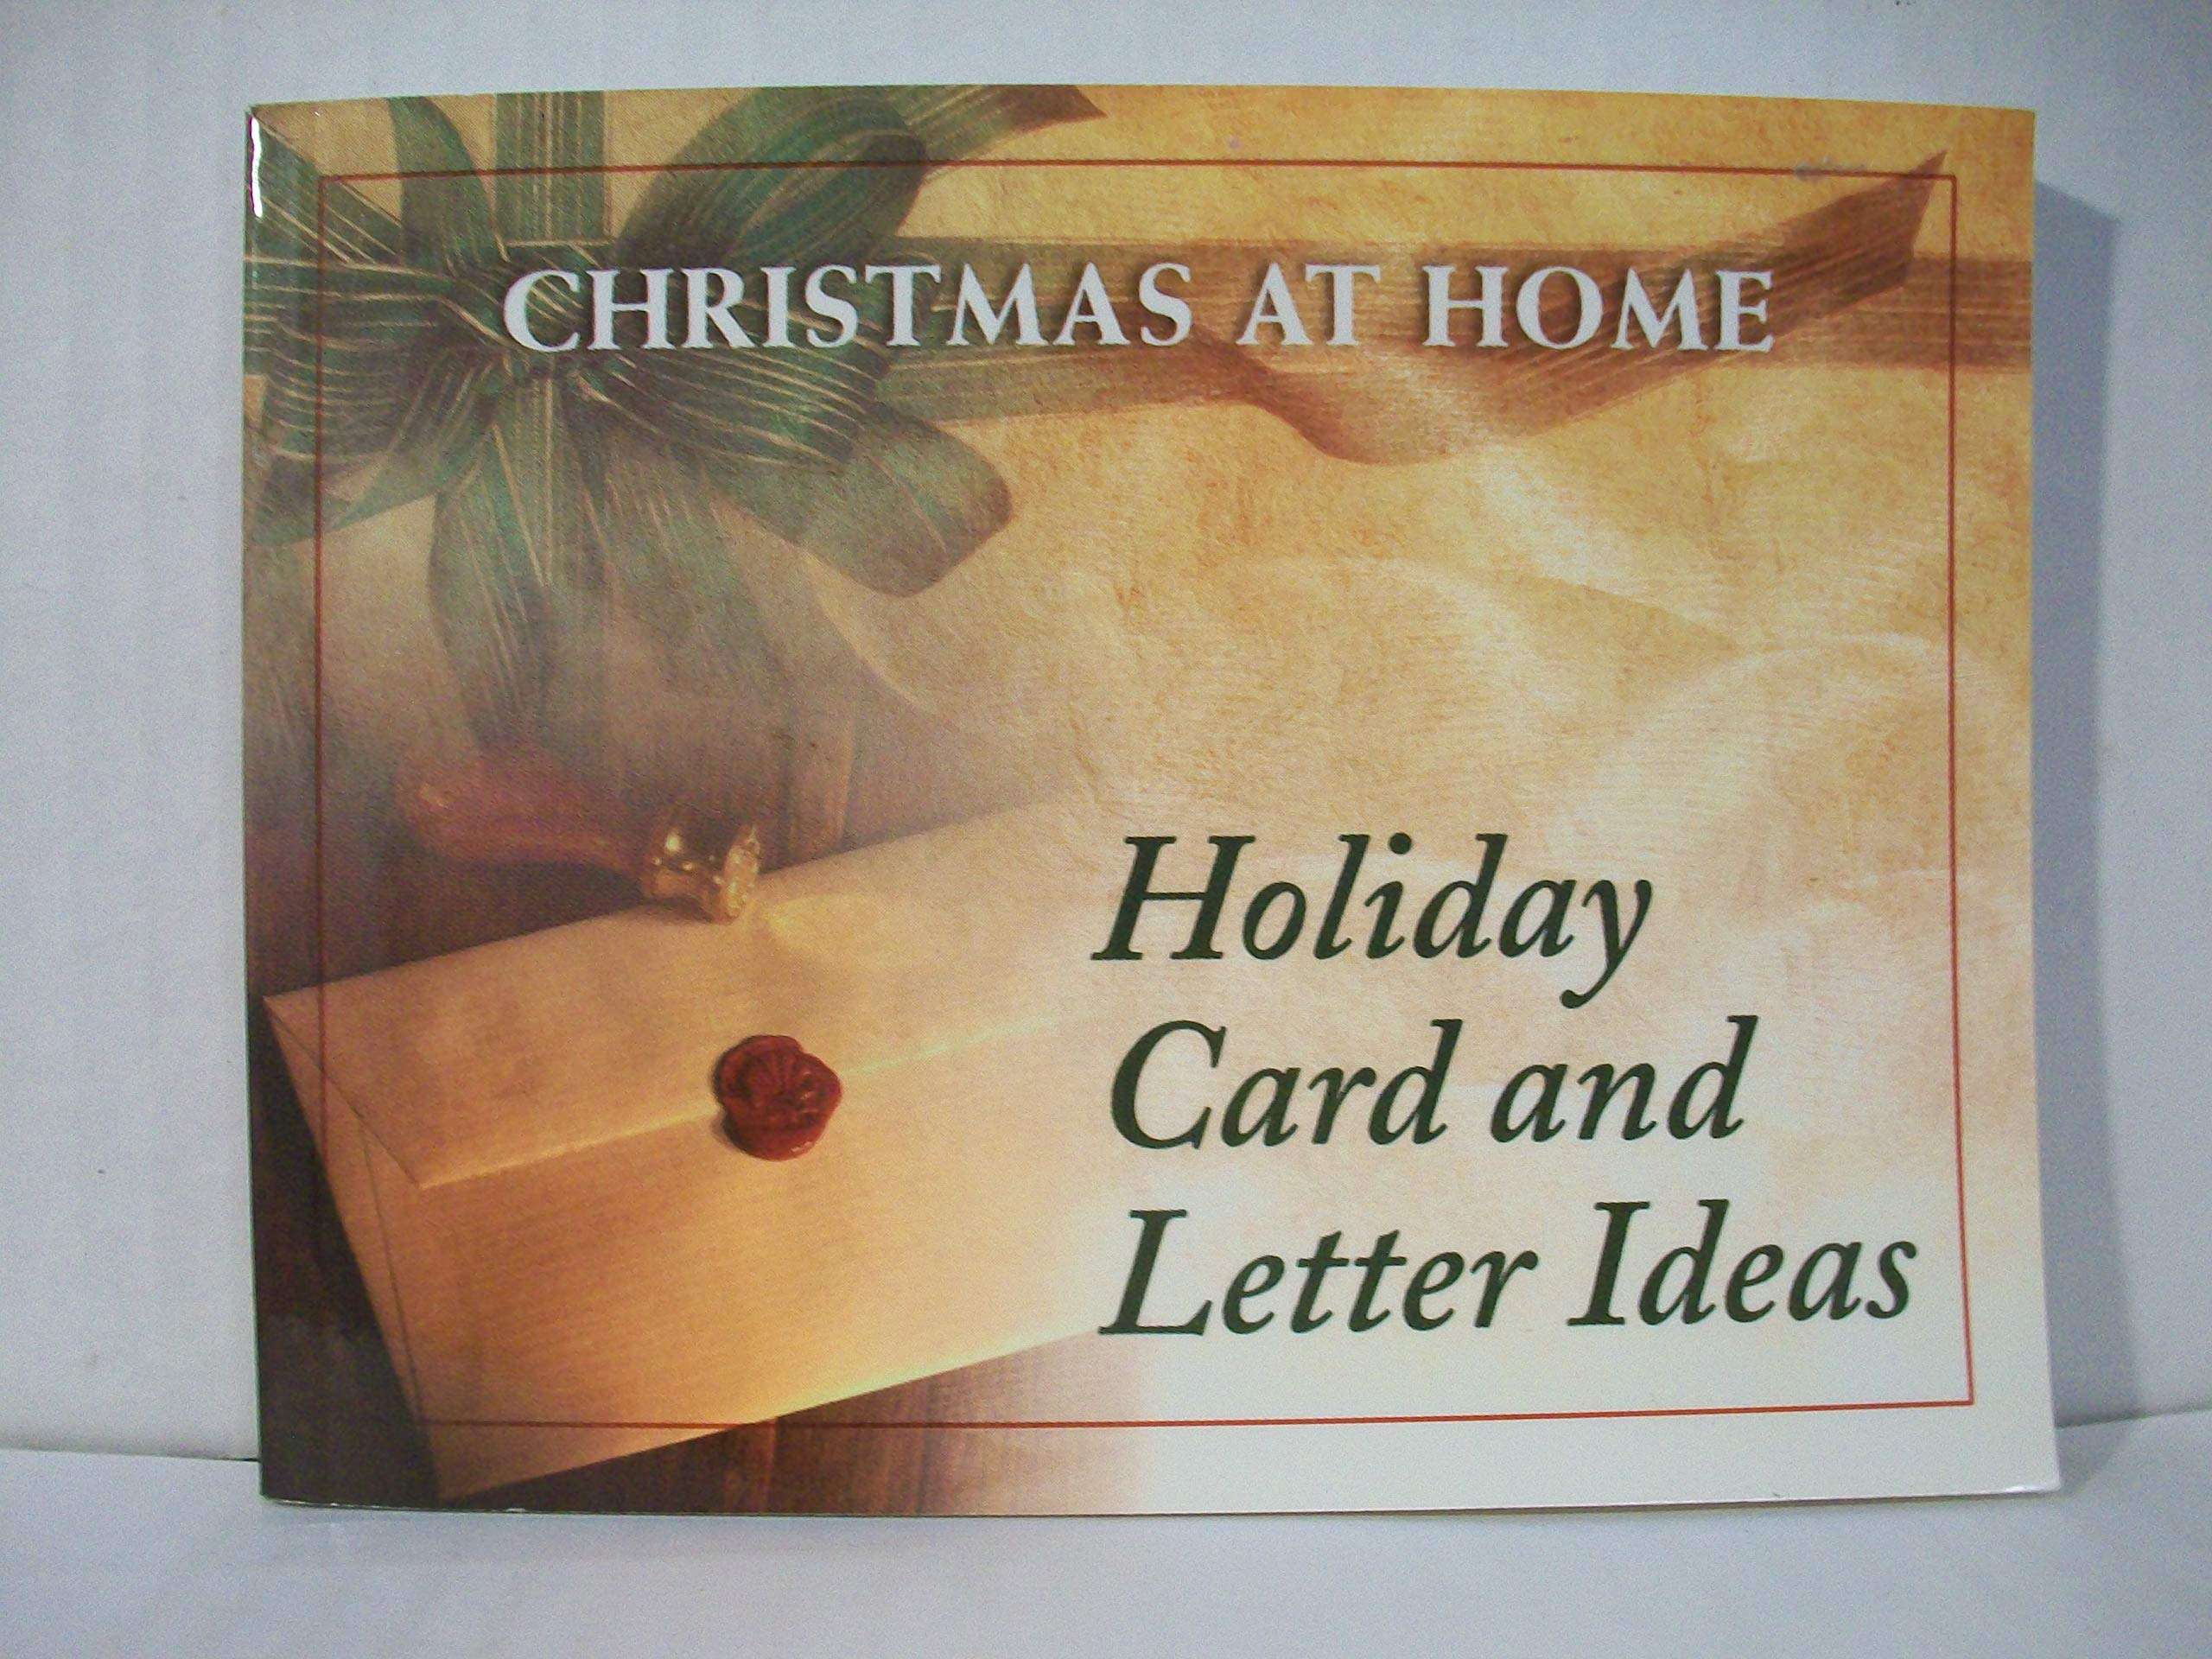 Christmas Card Letter Ideas.Holiday Card And Letter Ideas Christmas At Home Barbour